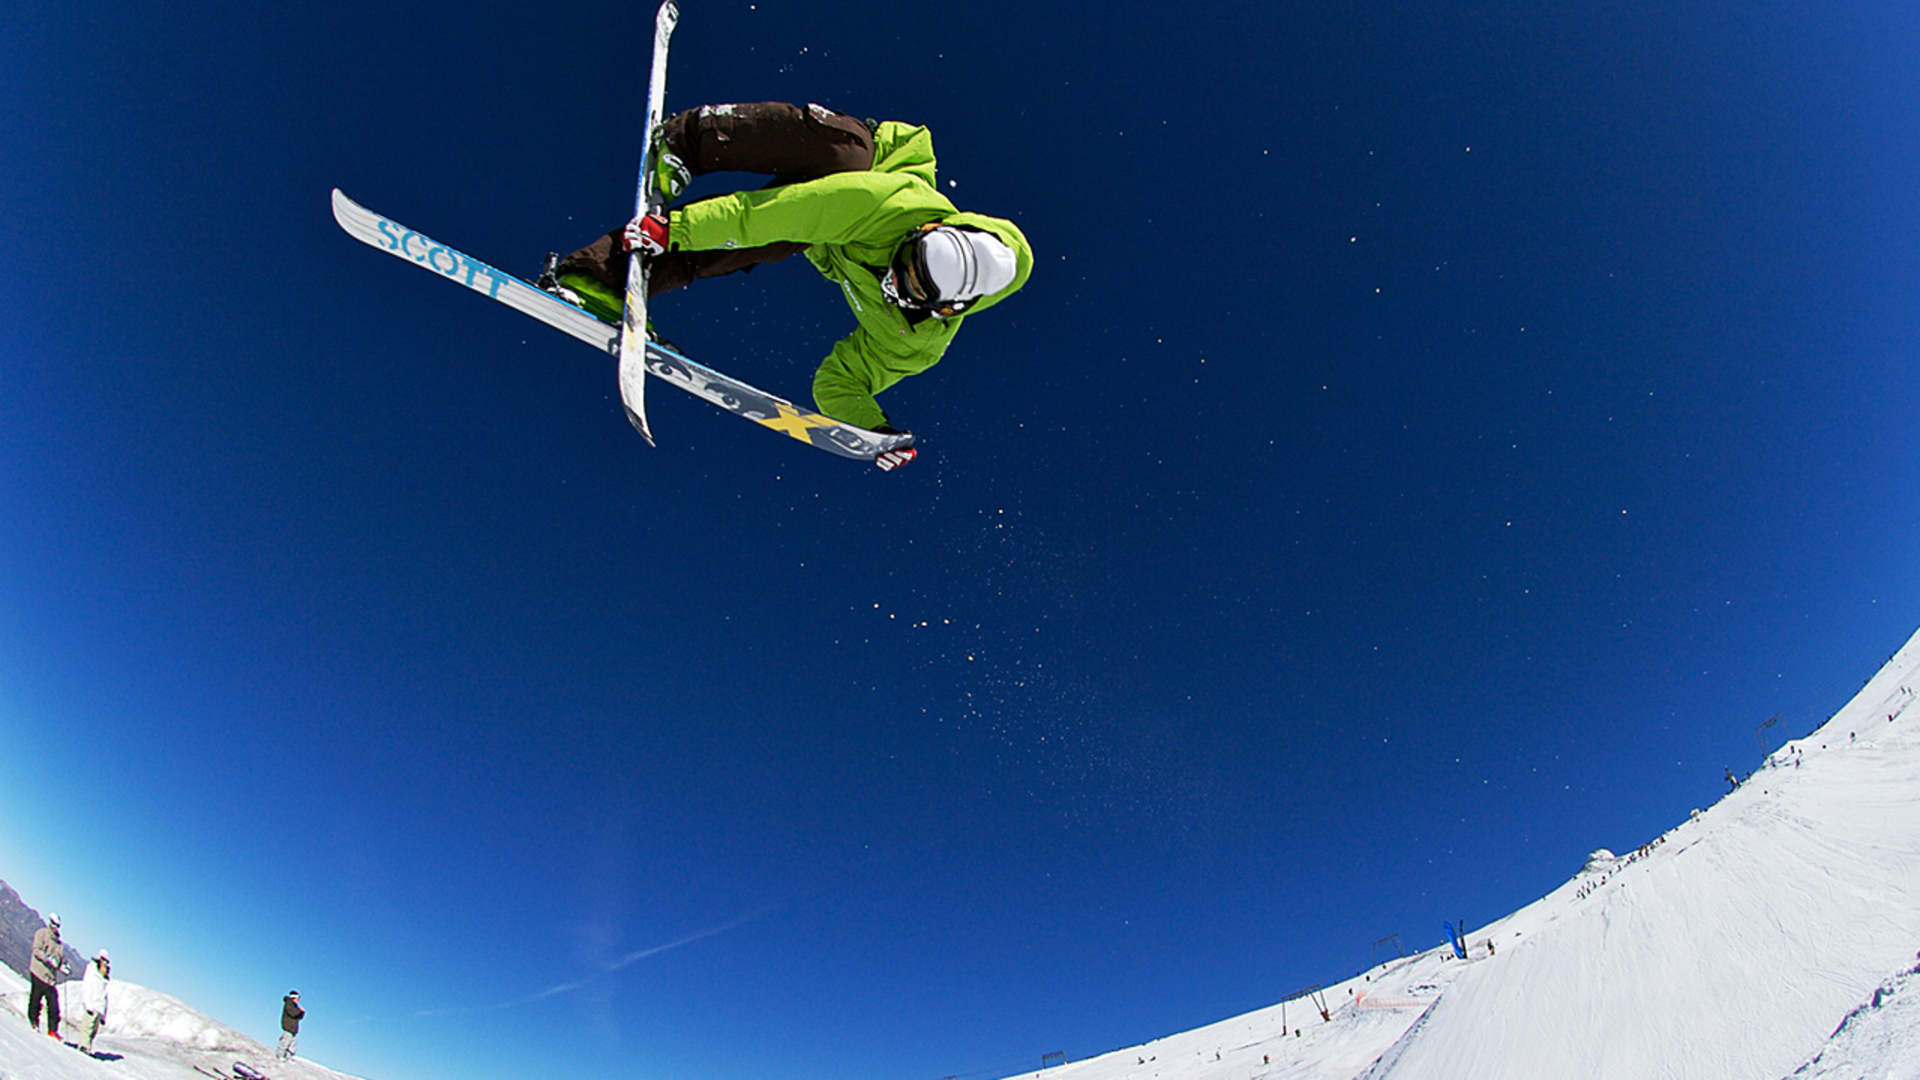 skiing full hd wallpaper and background image 1920x1080